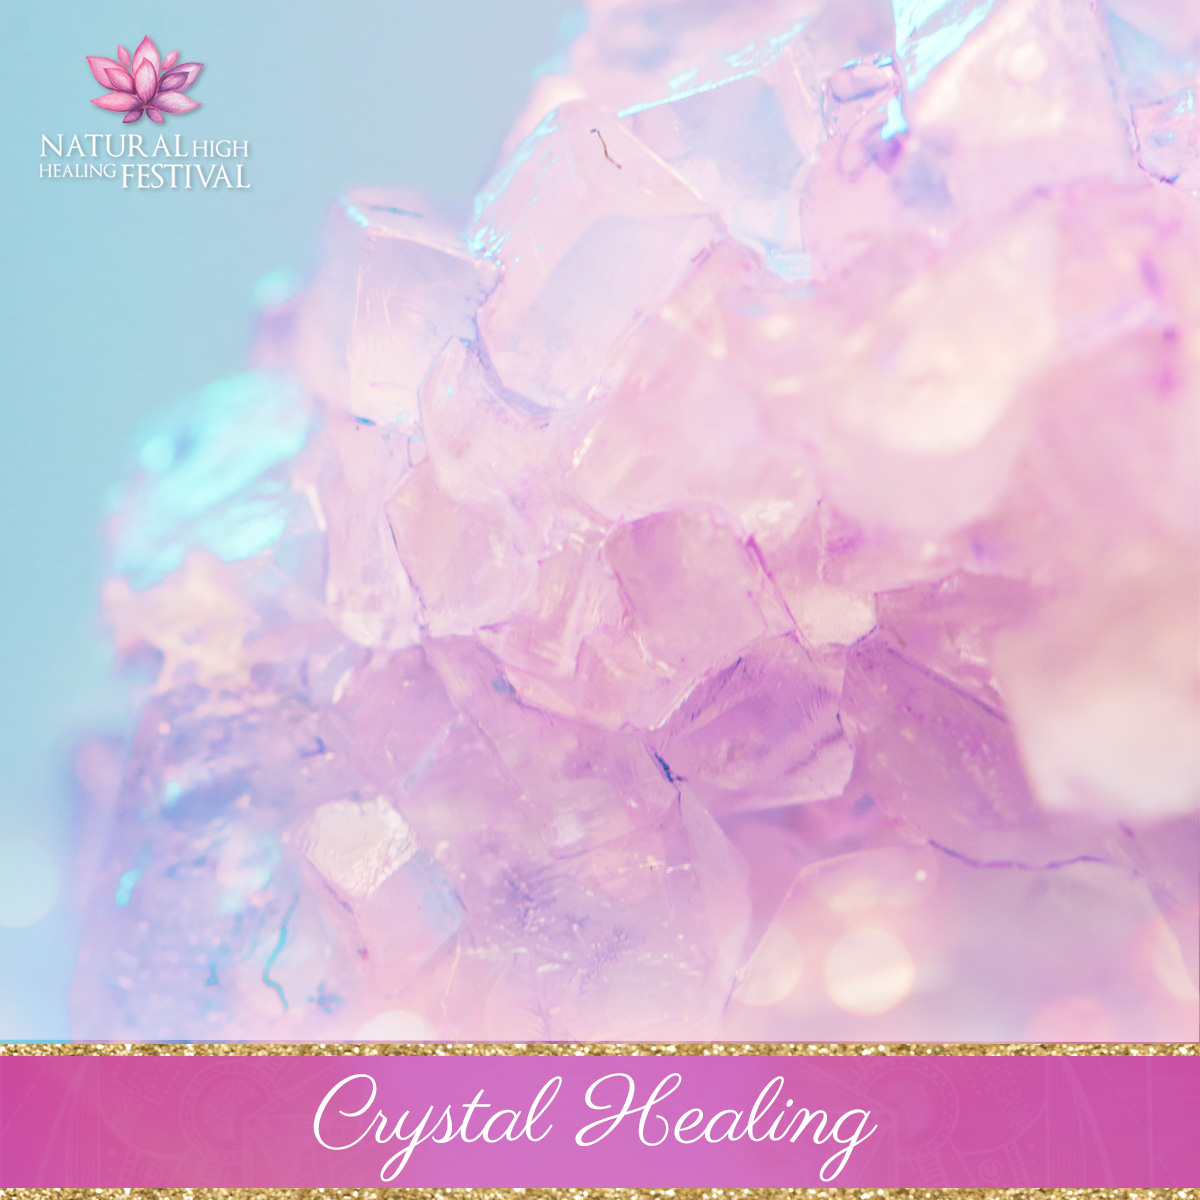 crystal healing at natural high healing  festival